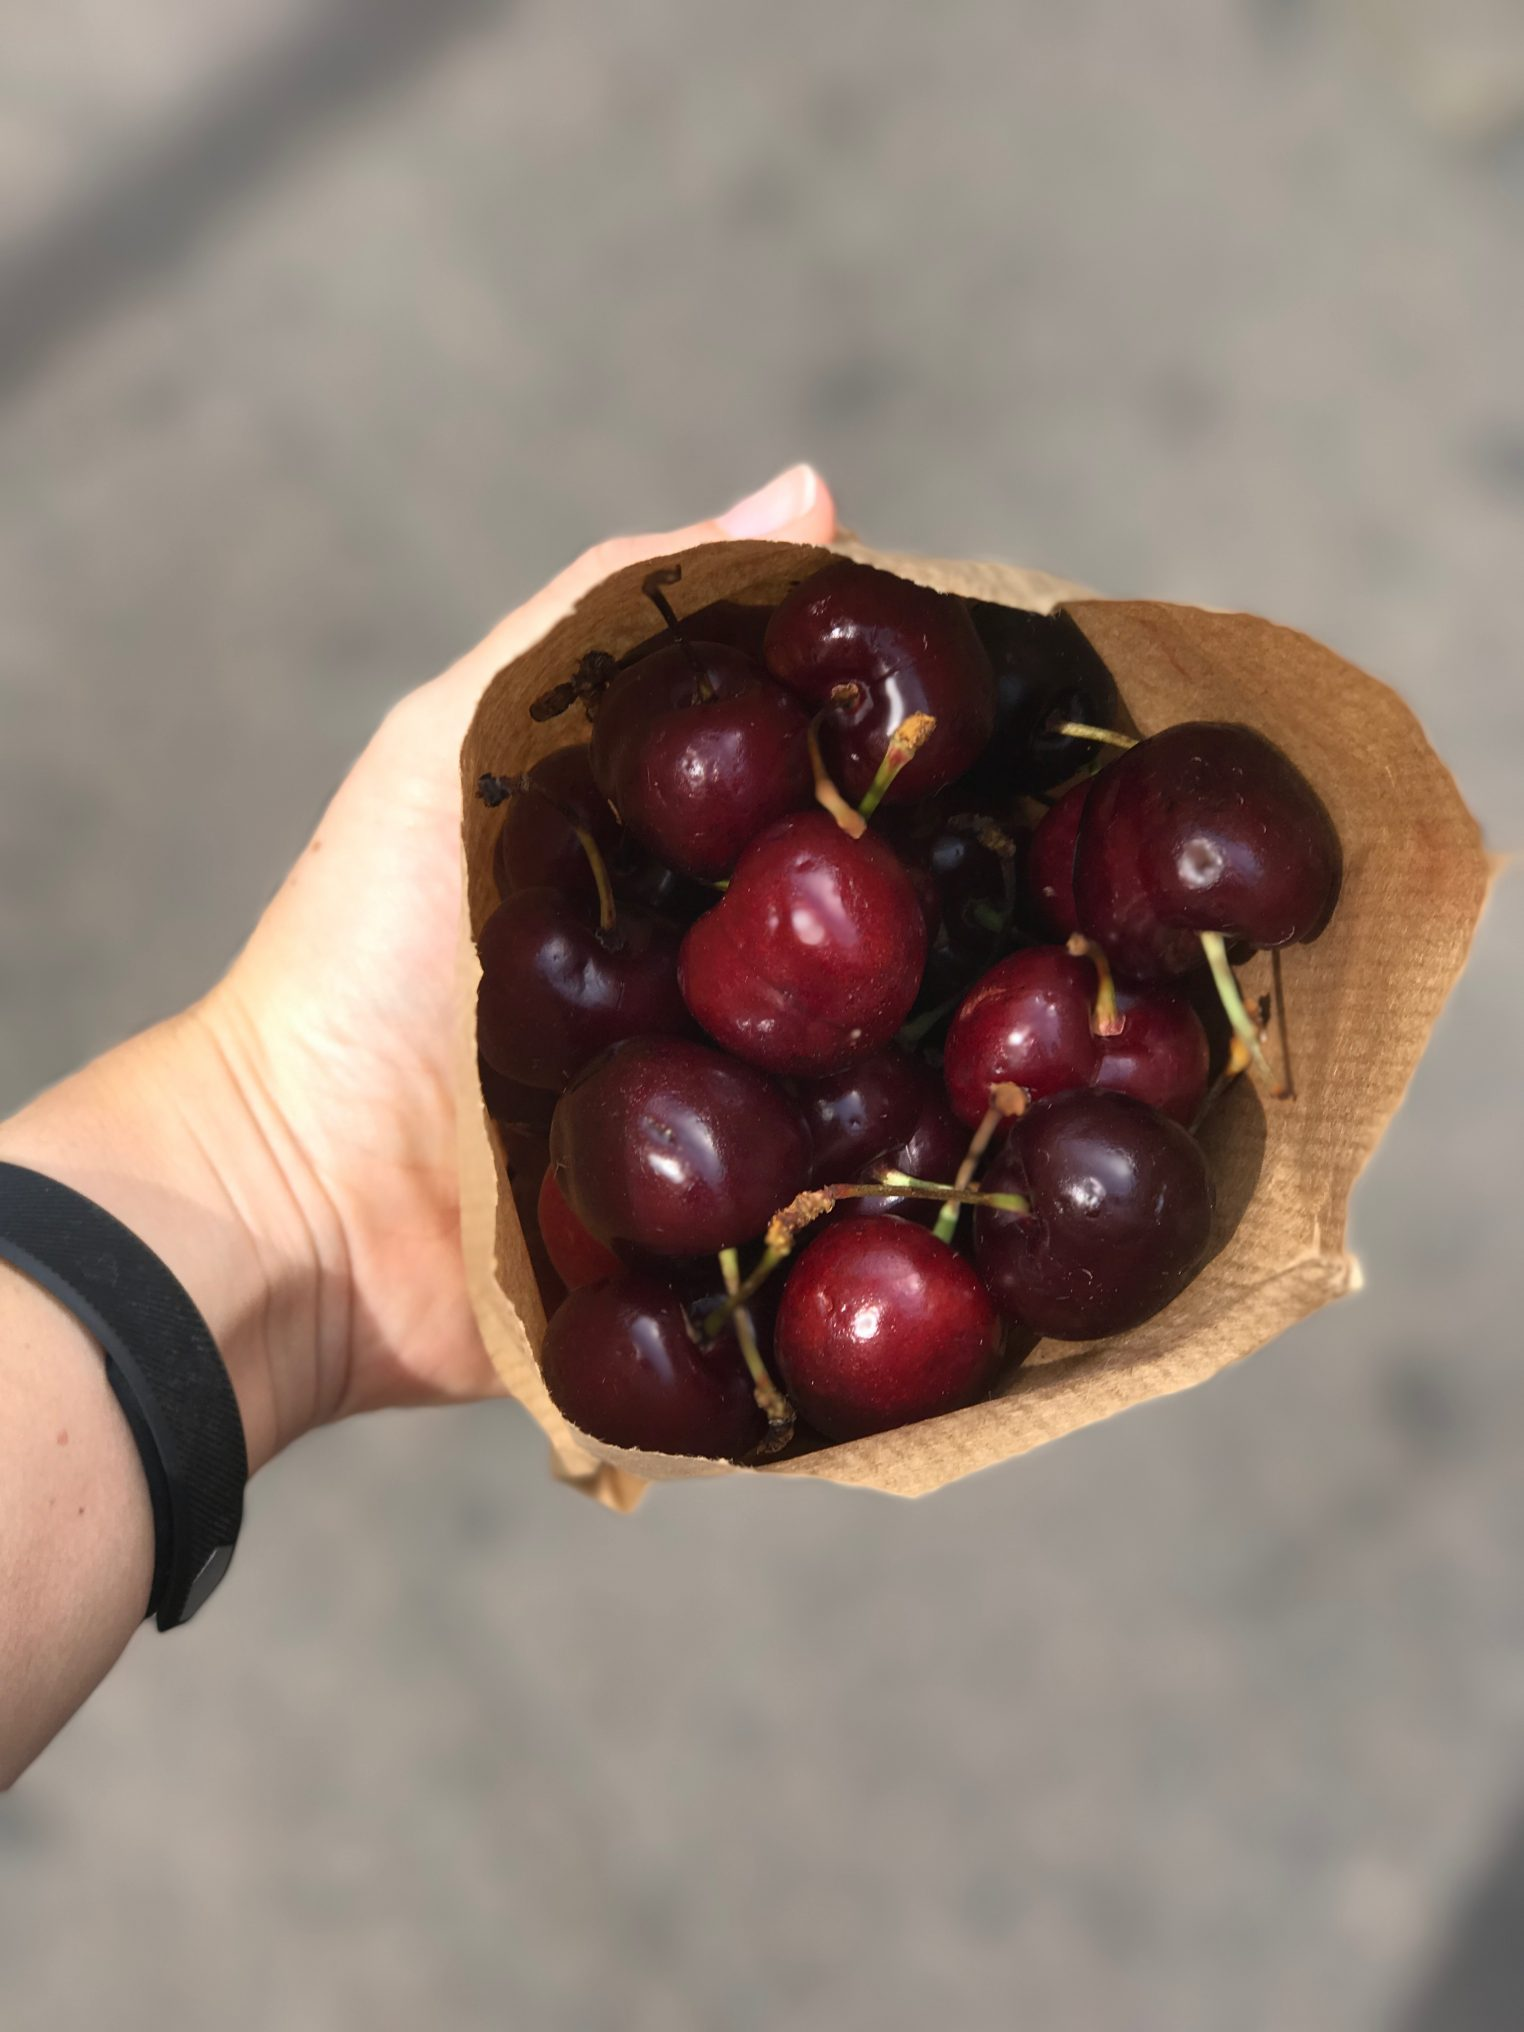 Fresh cherries from a market stall while strolling through the streets.